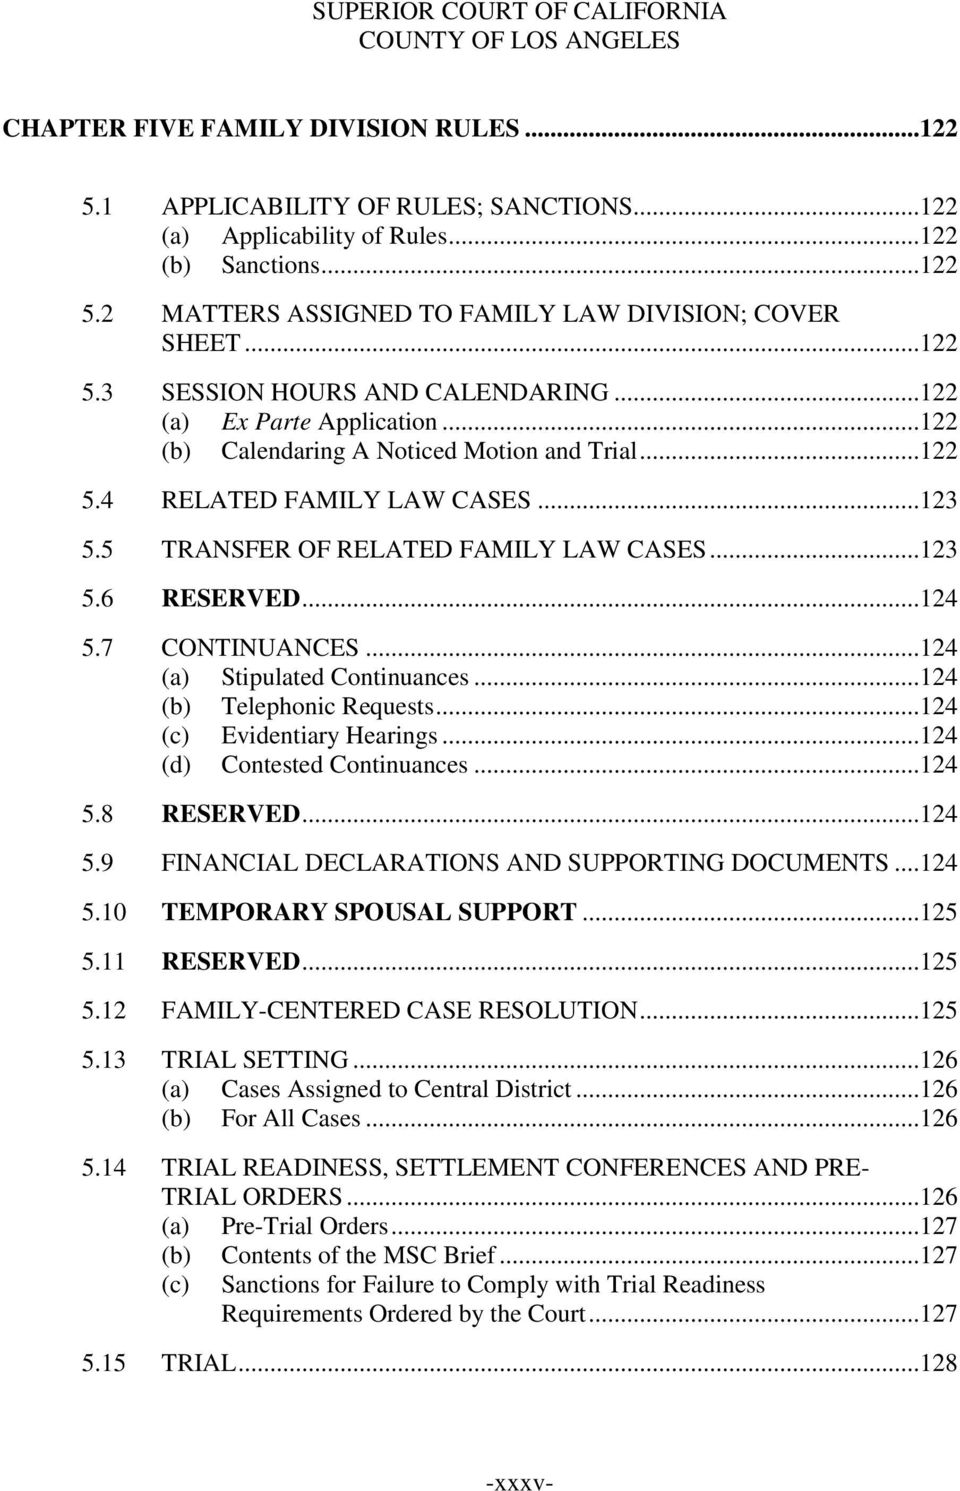 5 TRANSFER OF RELATED FAMILY LAW CASES...123 5.6 RESERVED...124 5.7 CONTINUANCES...124 (a) Stipulated Continuances...124 (b) Telephonic Requests...124 (c) Evidentiary Hearings.